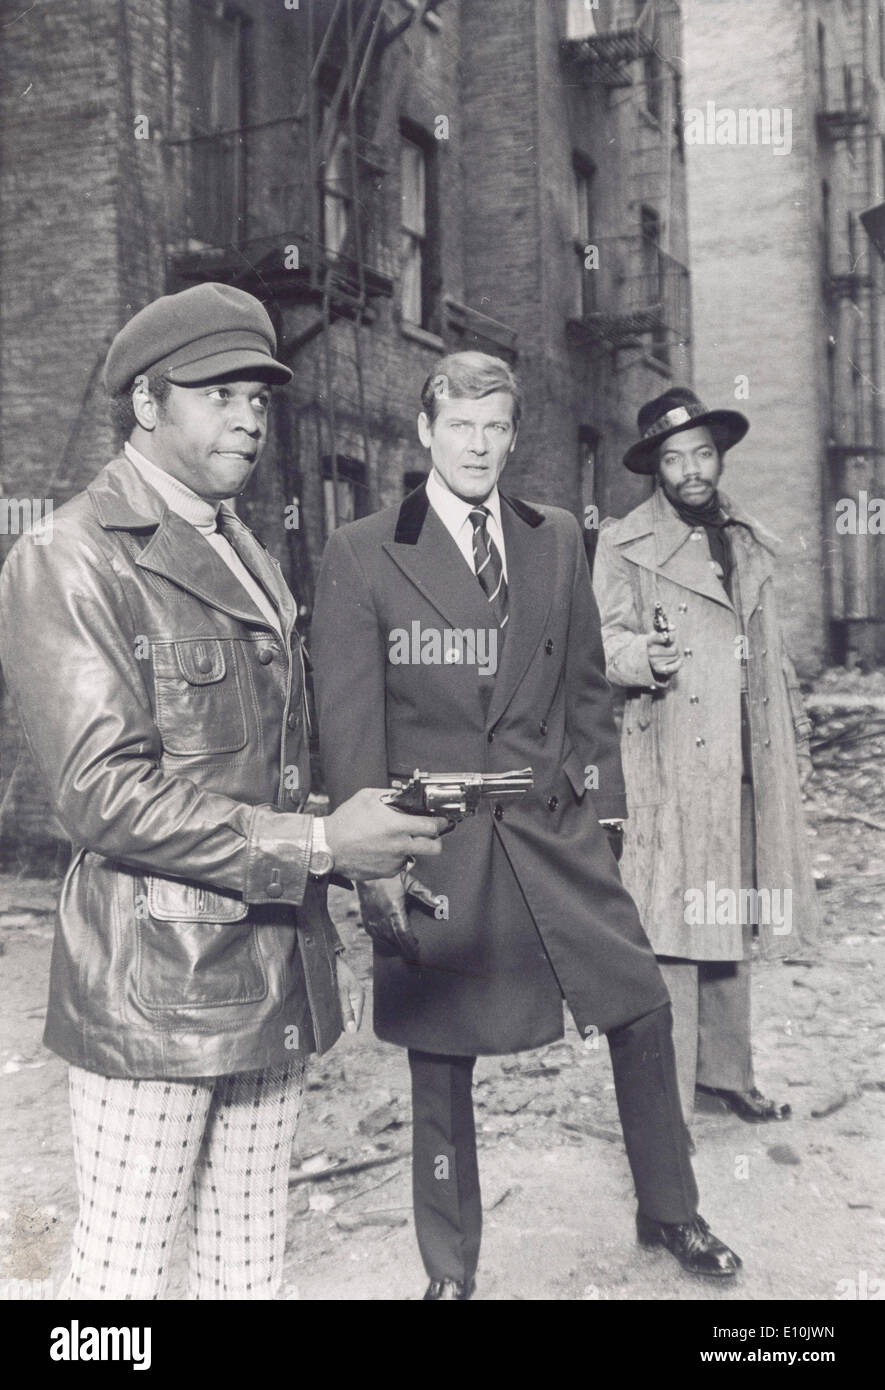 Actor Roger Moore on set of James Bond - Stock Image